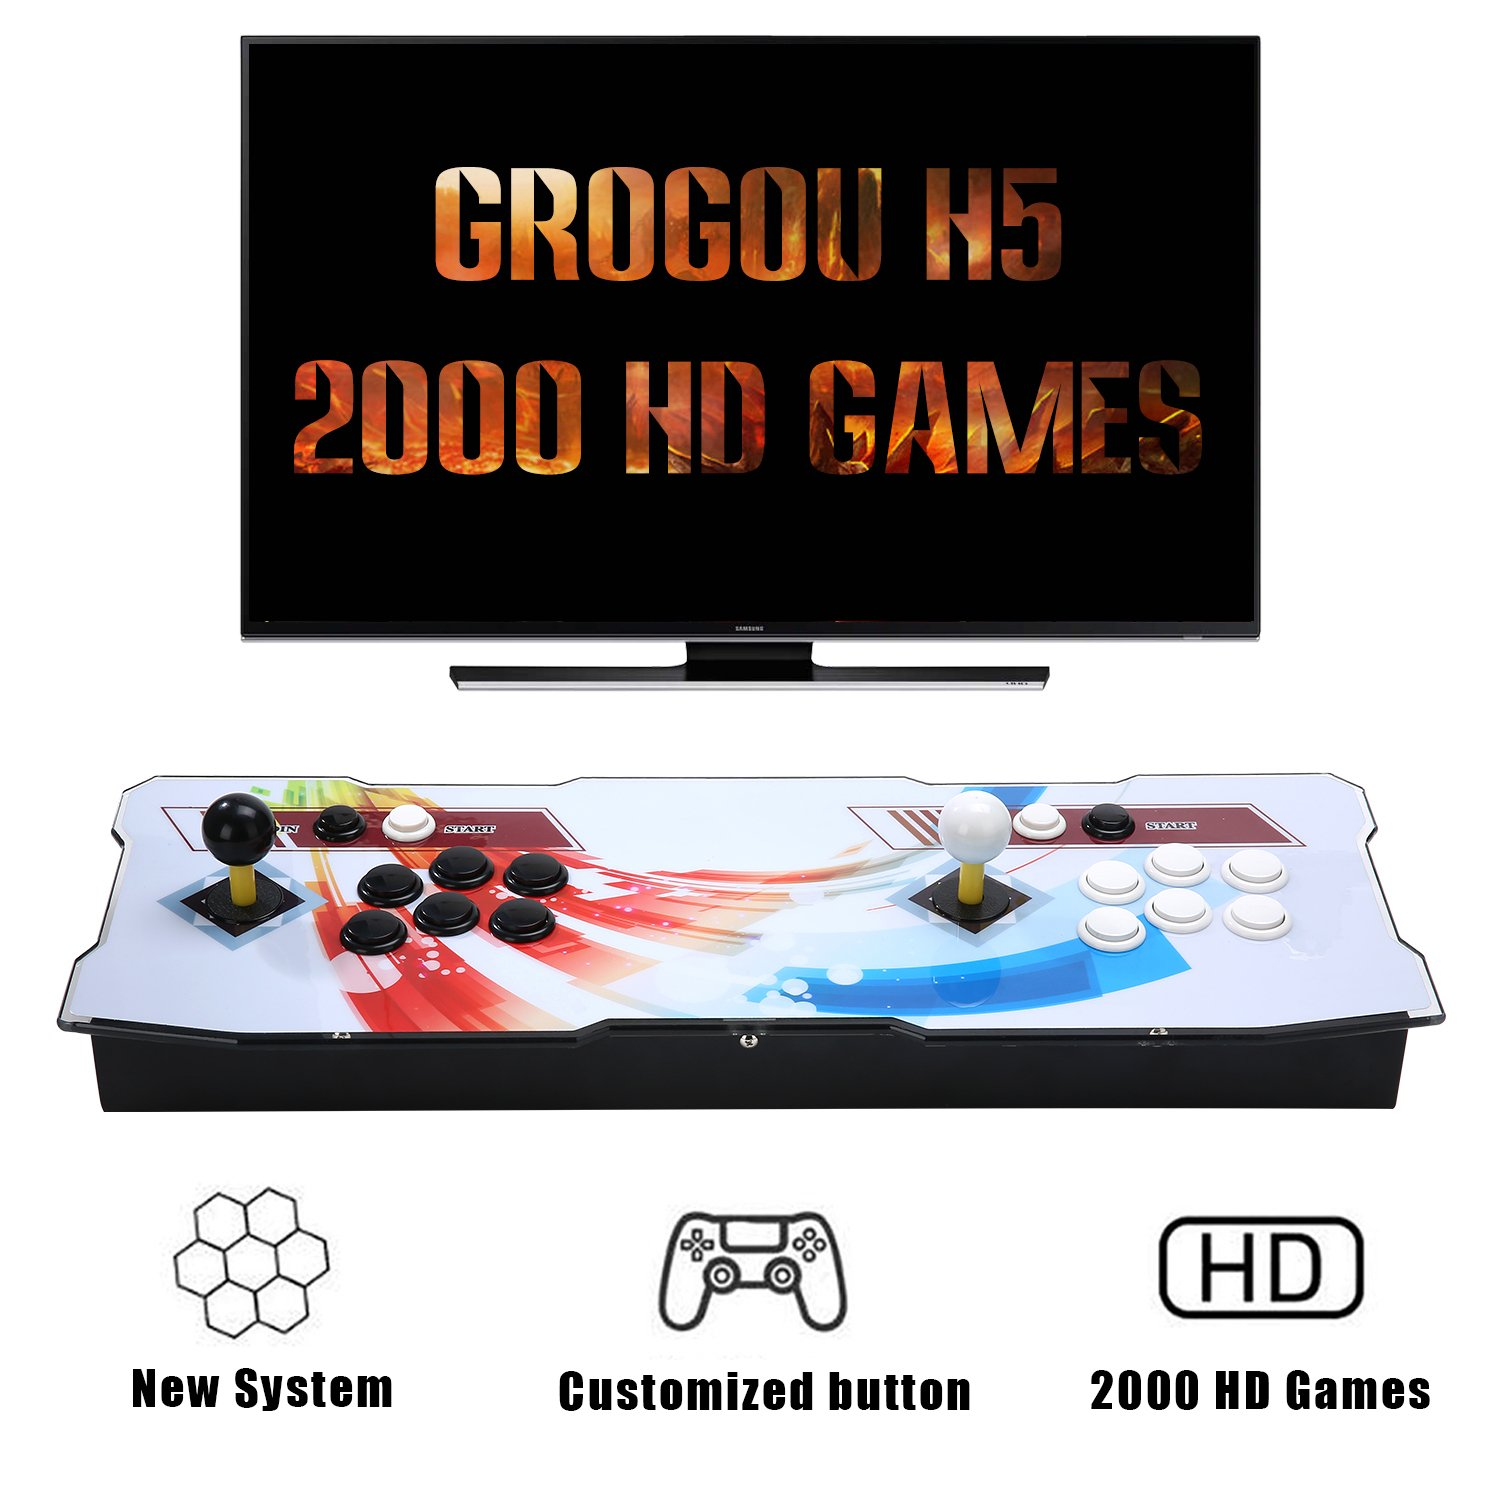 [2000 HD Acrade Games] GroGou H5 Arcade Video Game Console Unique system with 2000 Games, Customeried Buttons and Favourite List Function, 1280x720 Full HD, Advanced CPU